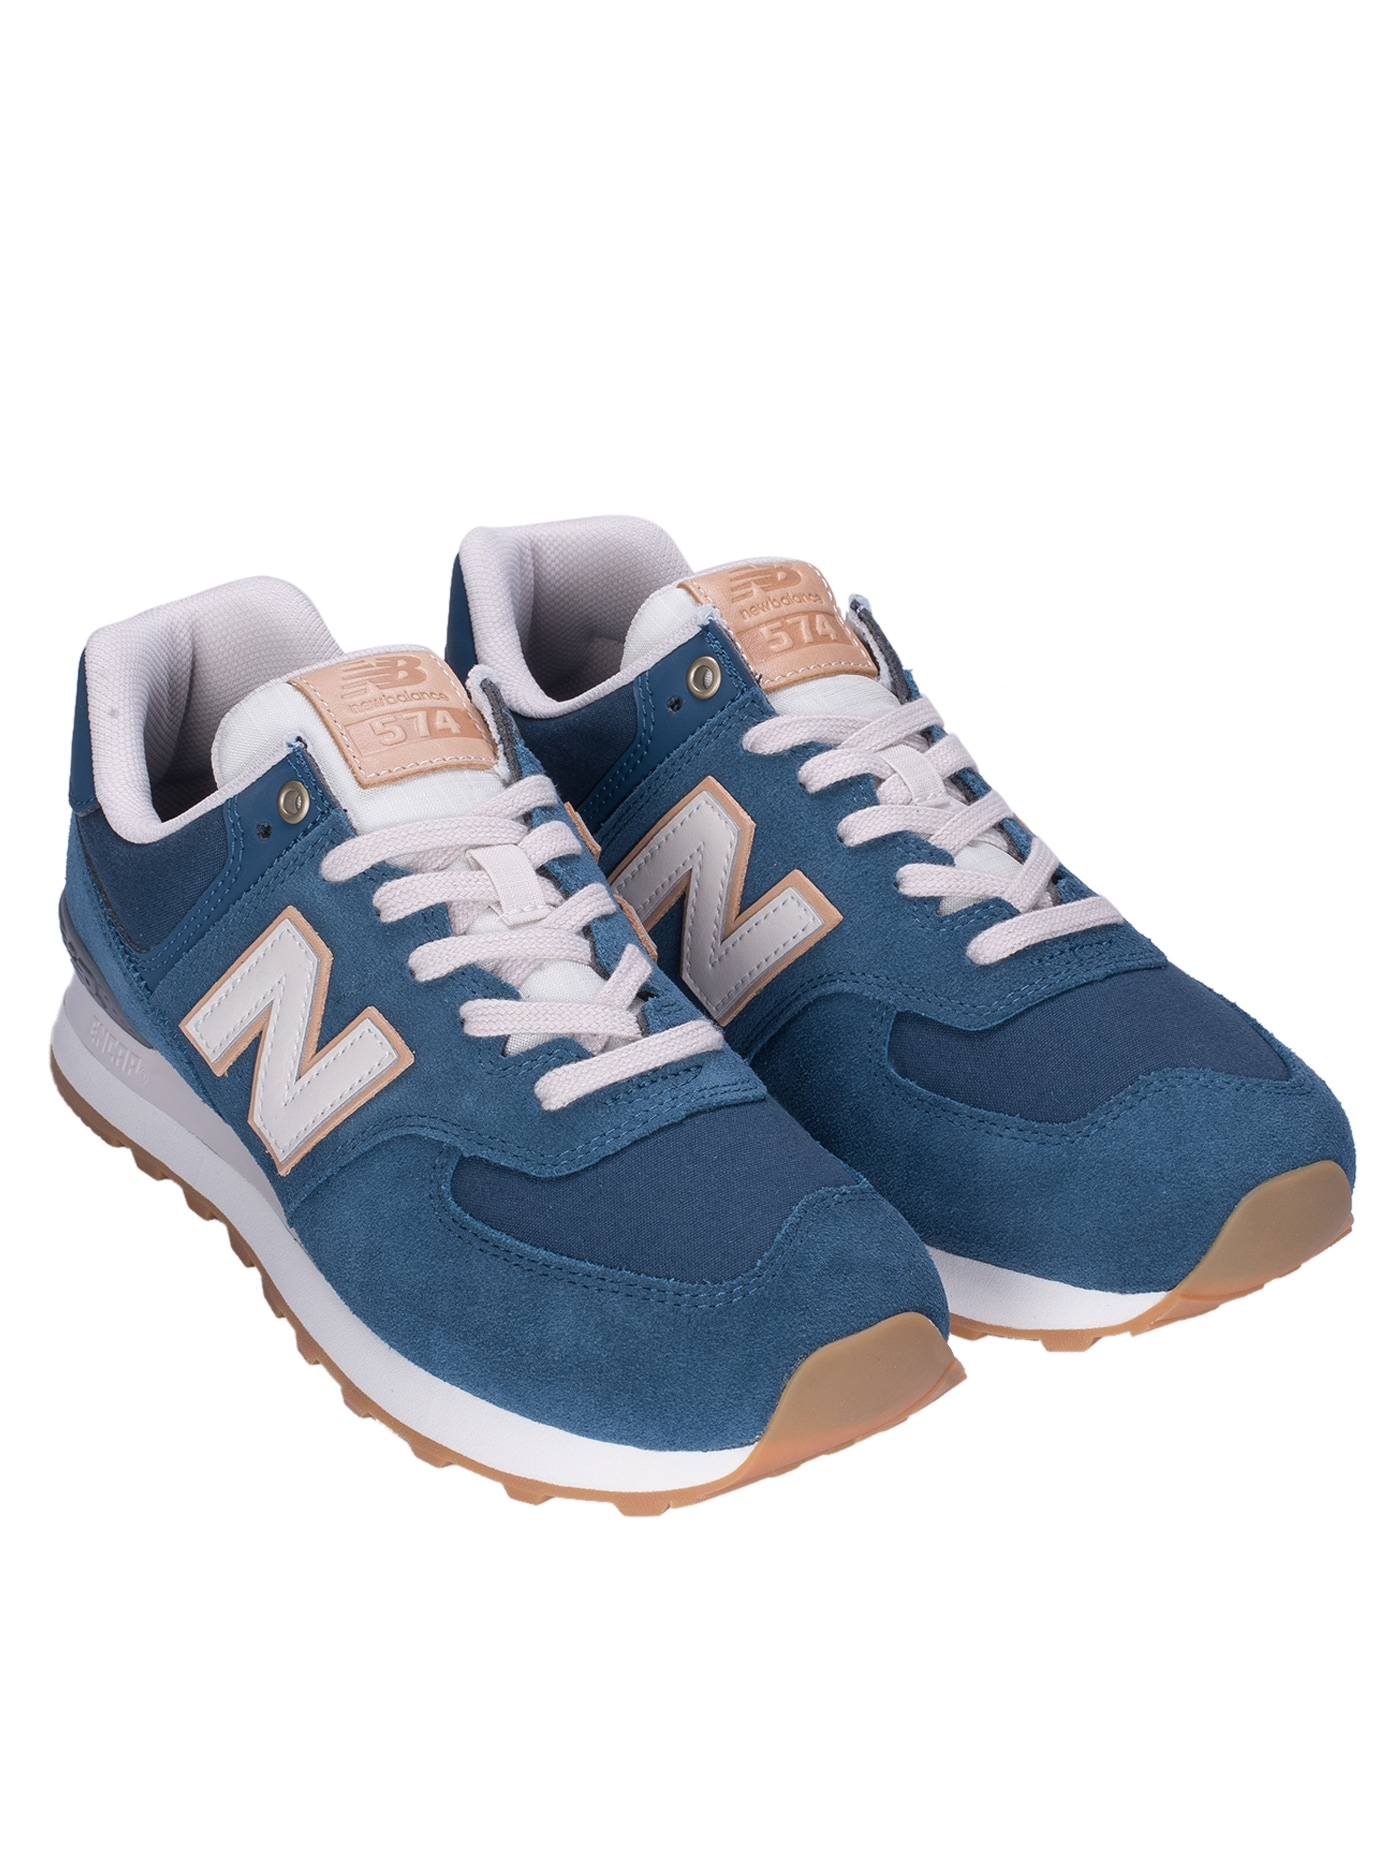 new styles 4526b 73392 NEW BALANCE Men's Casual Shoes 574 Natural Outdoor ML5 ...